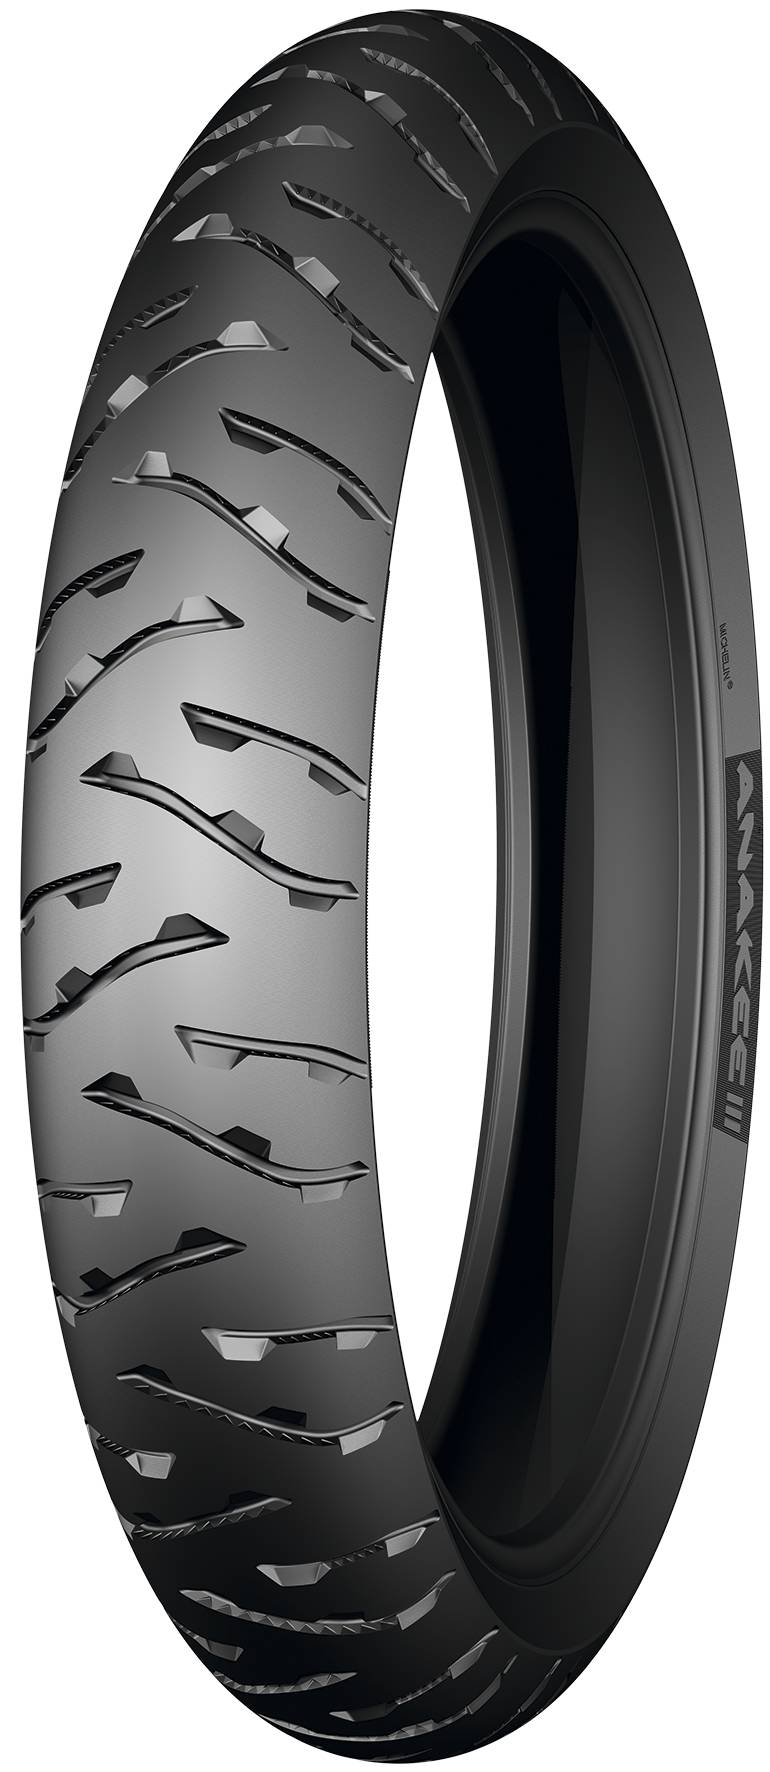 Michelin Anakee Iii 120/70 R 19 M/c 60v Tl/tt Front